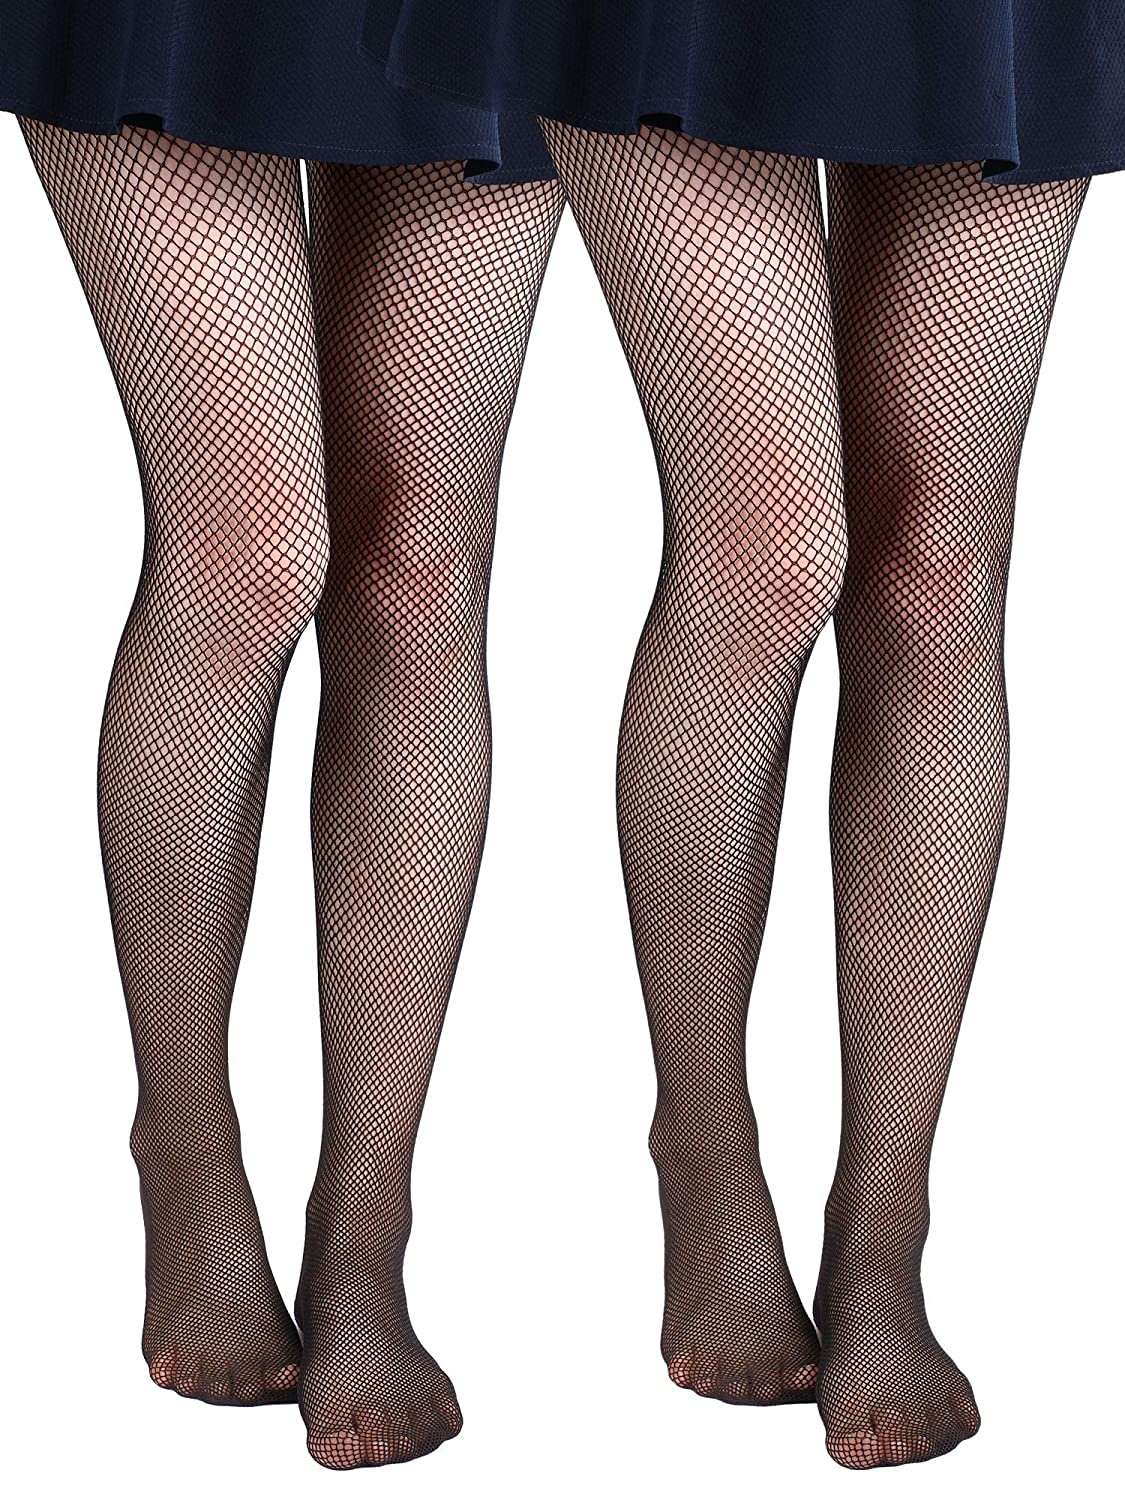 4 Pairs Girls Black Fishnet Tights Mesh Net Stockings Hollowed-Out Pantyhose